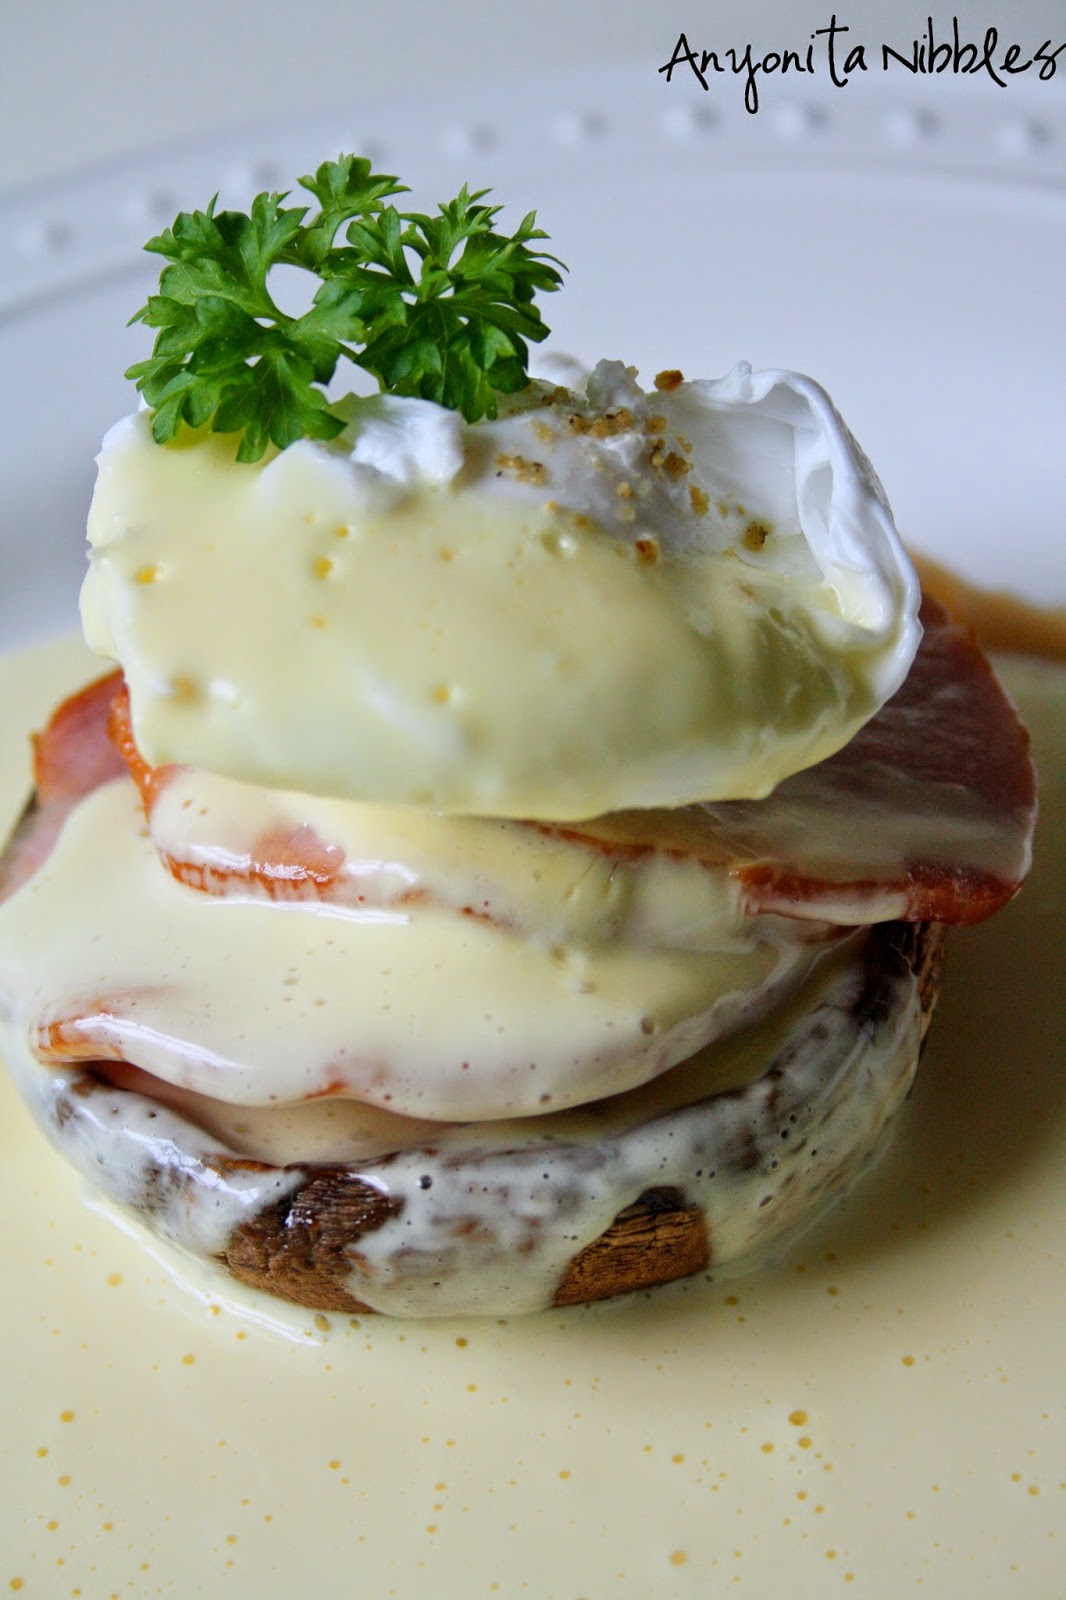 http://www.anyonita-nibbles.co.uk/2014/05/gluten-free-eggs-benedict-easiest-blender-hollandaise-grilled-portabello.html